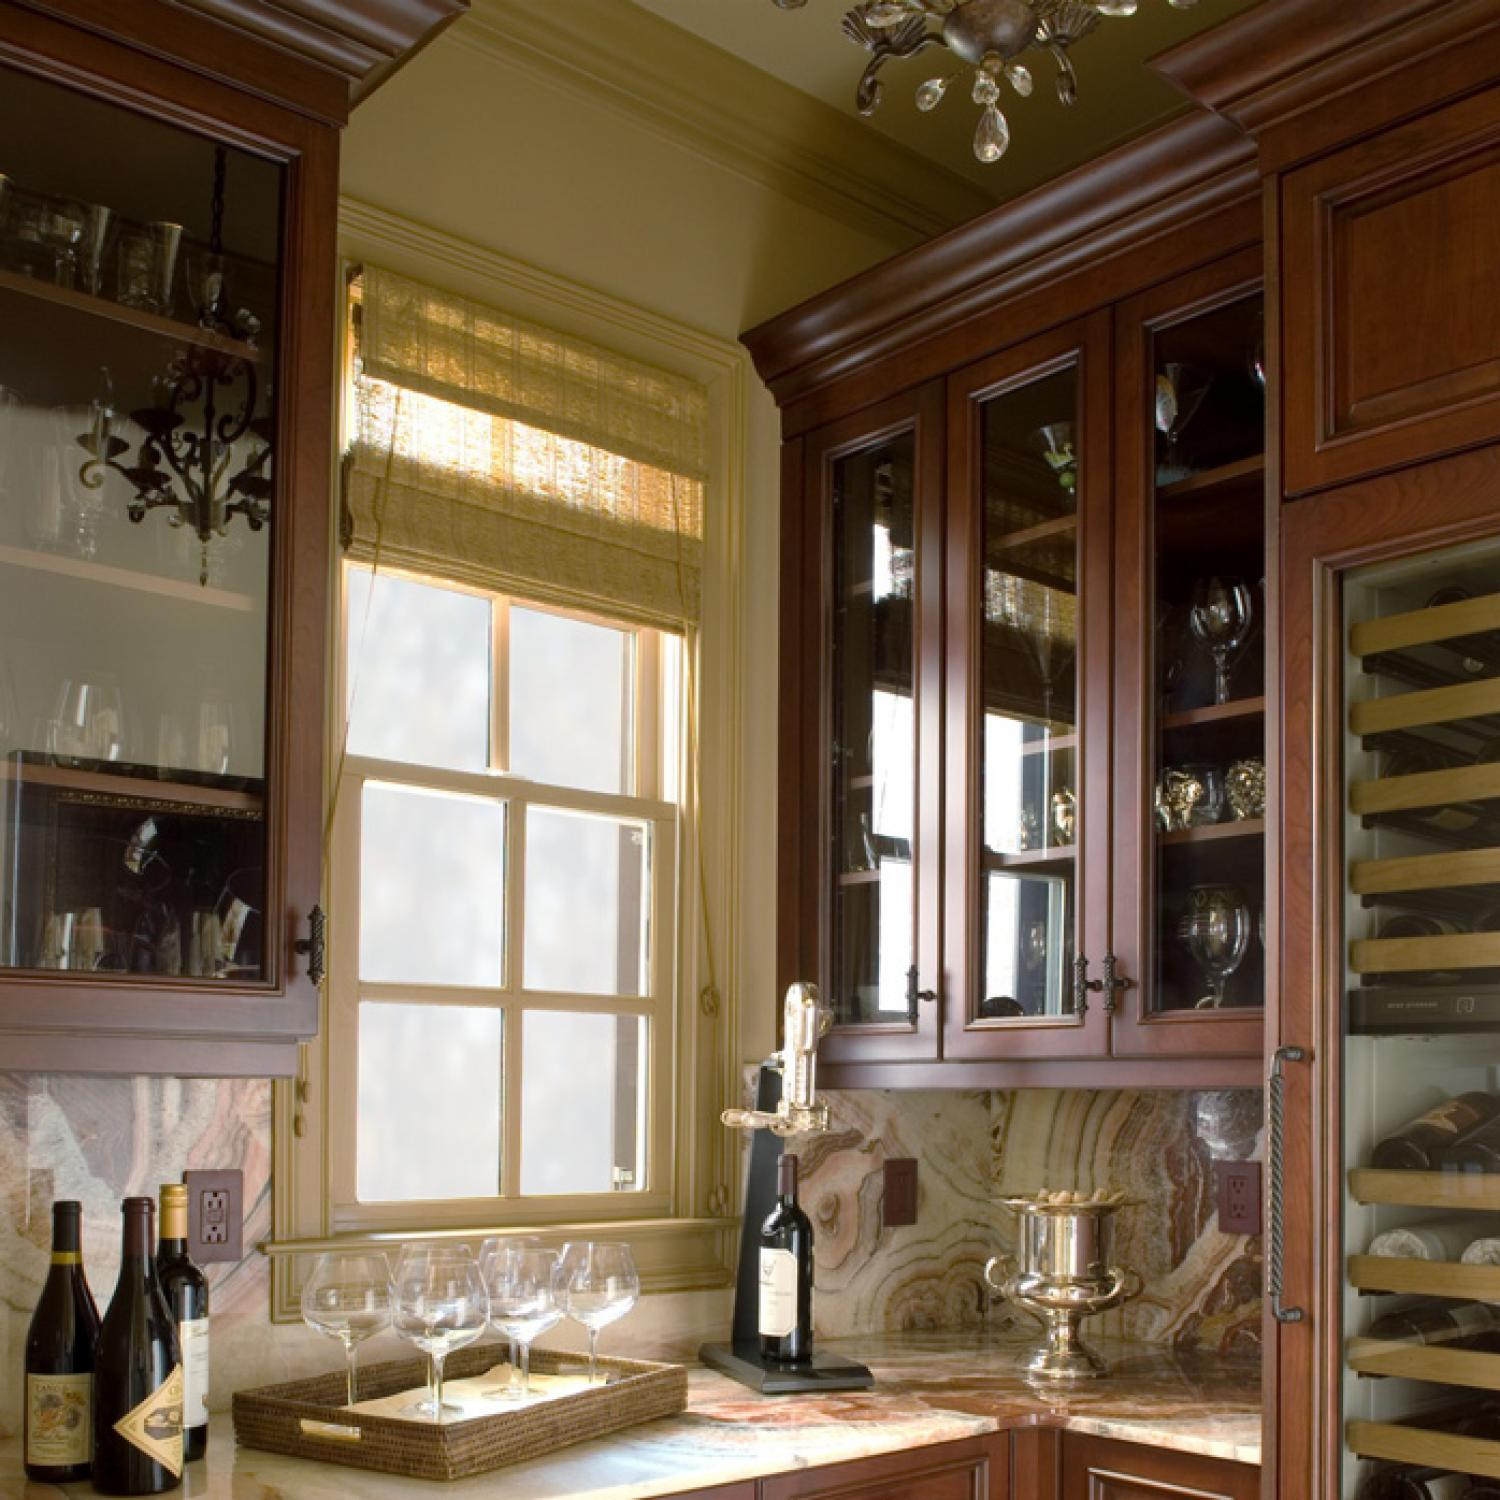 get organized butlers pantries traditional home butler pantry design ideas - Butler Pantry Design Ideas